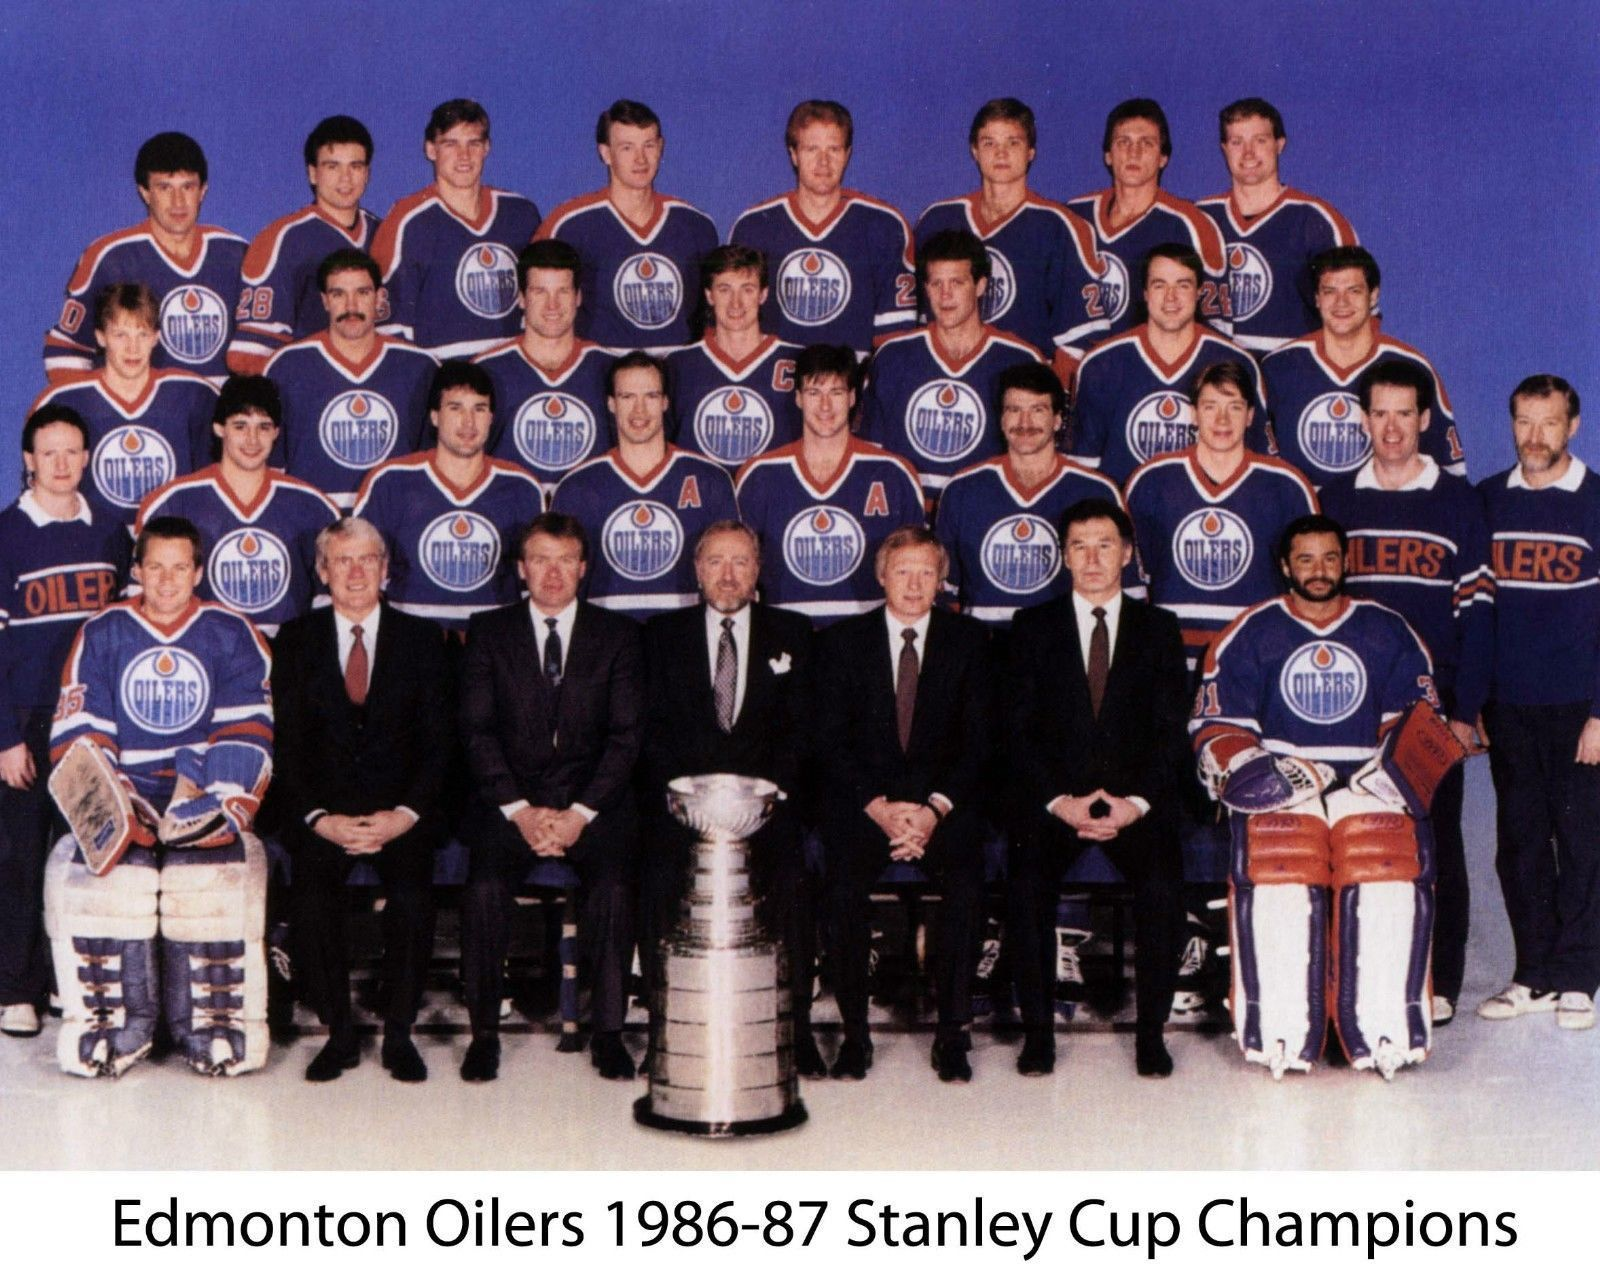 Edmonton Oilers 1986 87 Stanley Cup Champs Team Nhl Hockey 8x10 Glossy Photo Edmonton Oilers Oilers Nhl Hockey